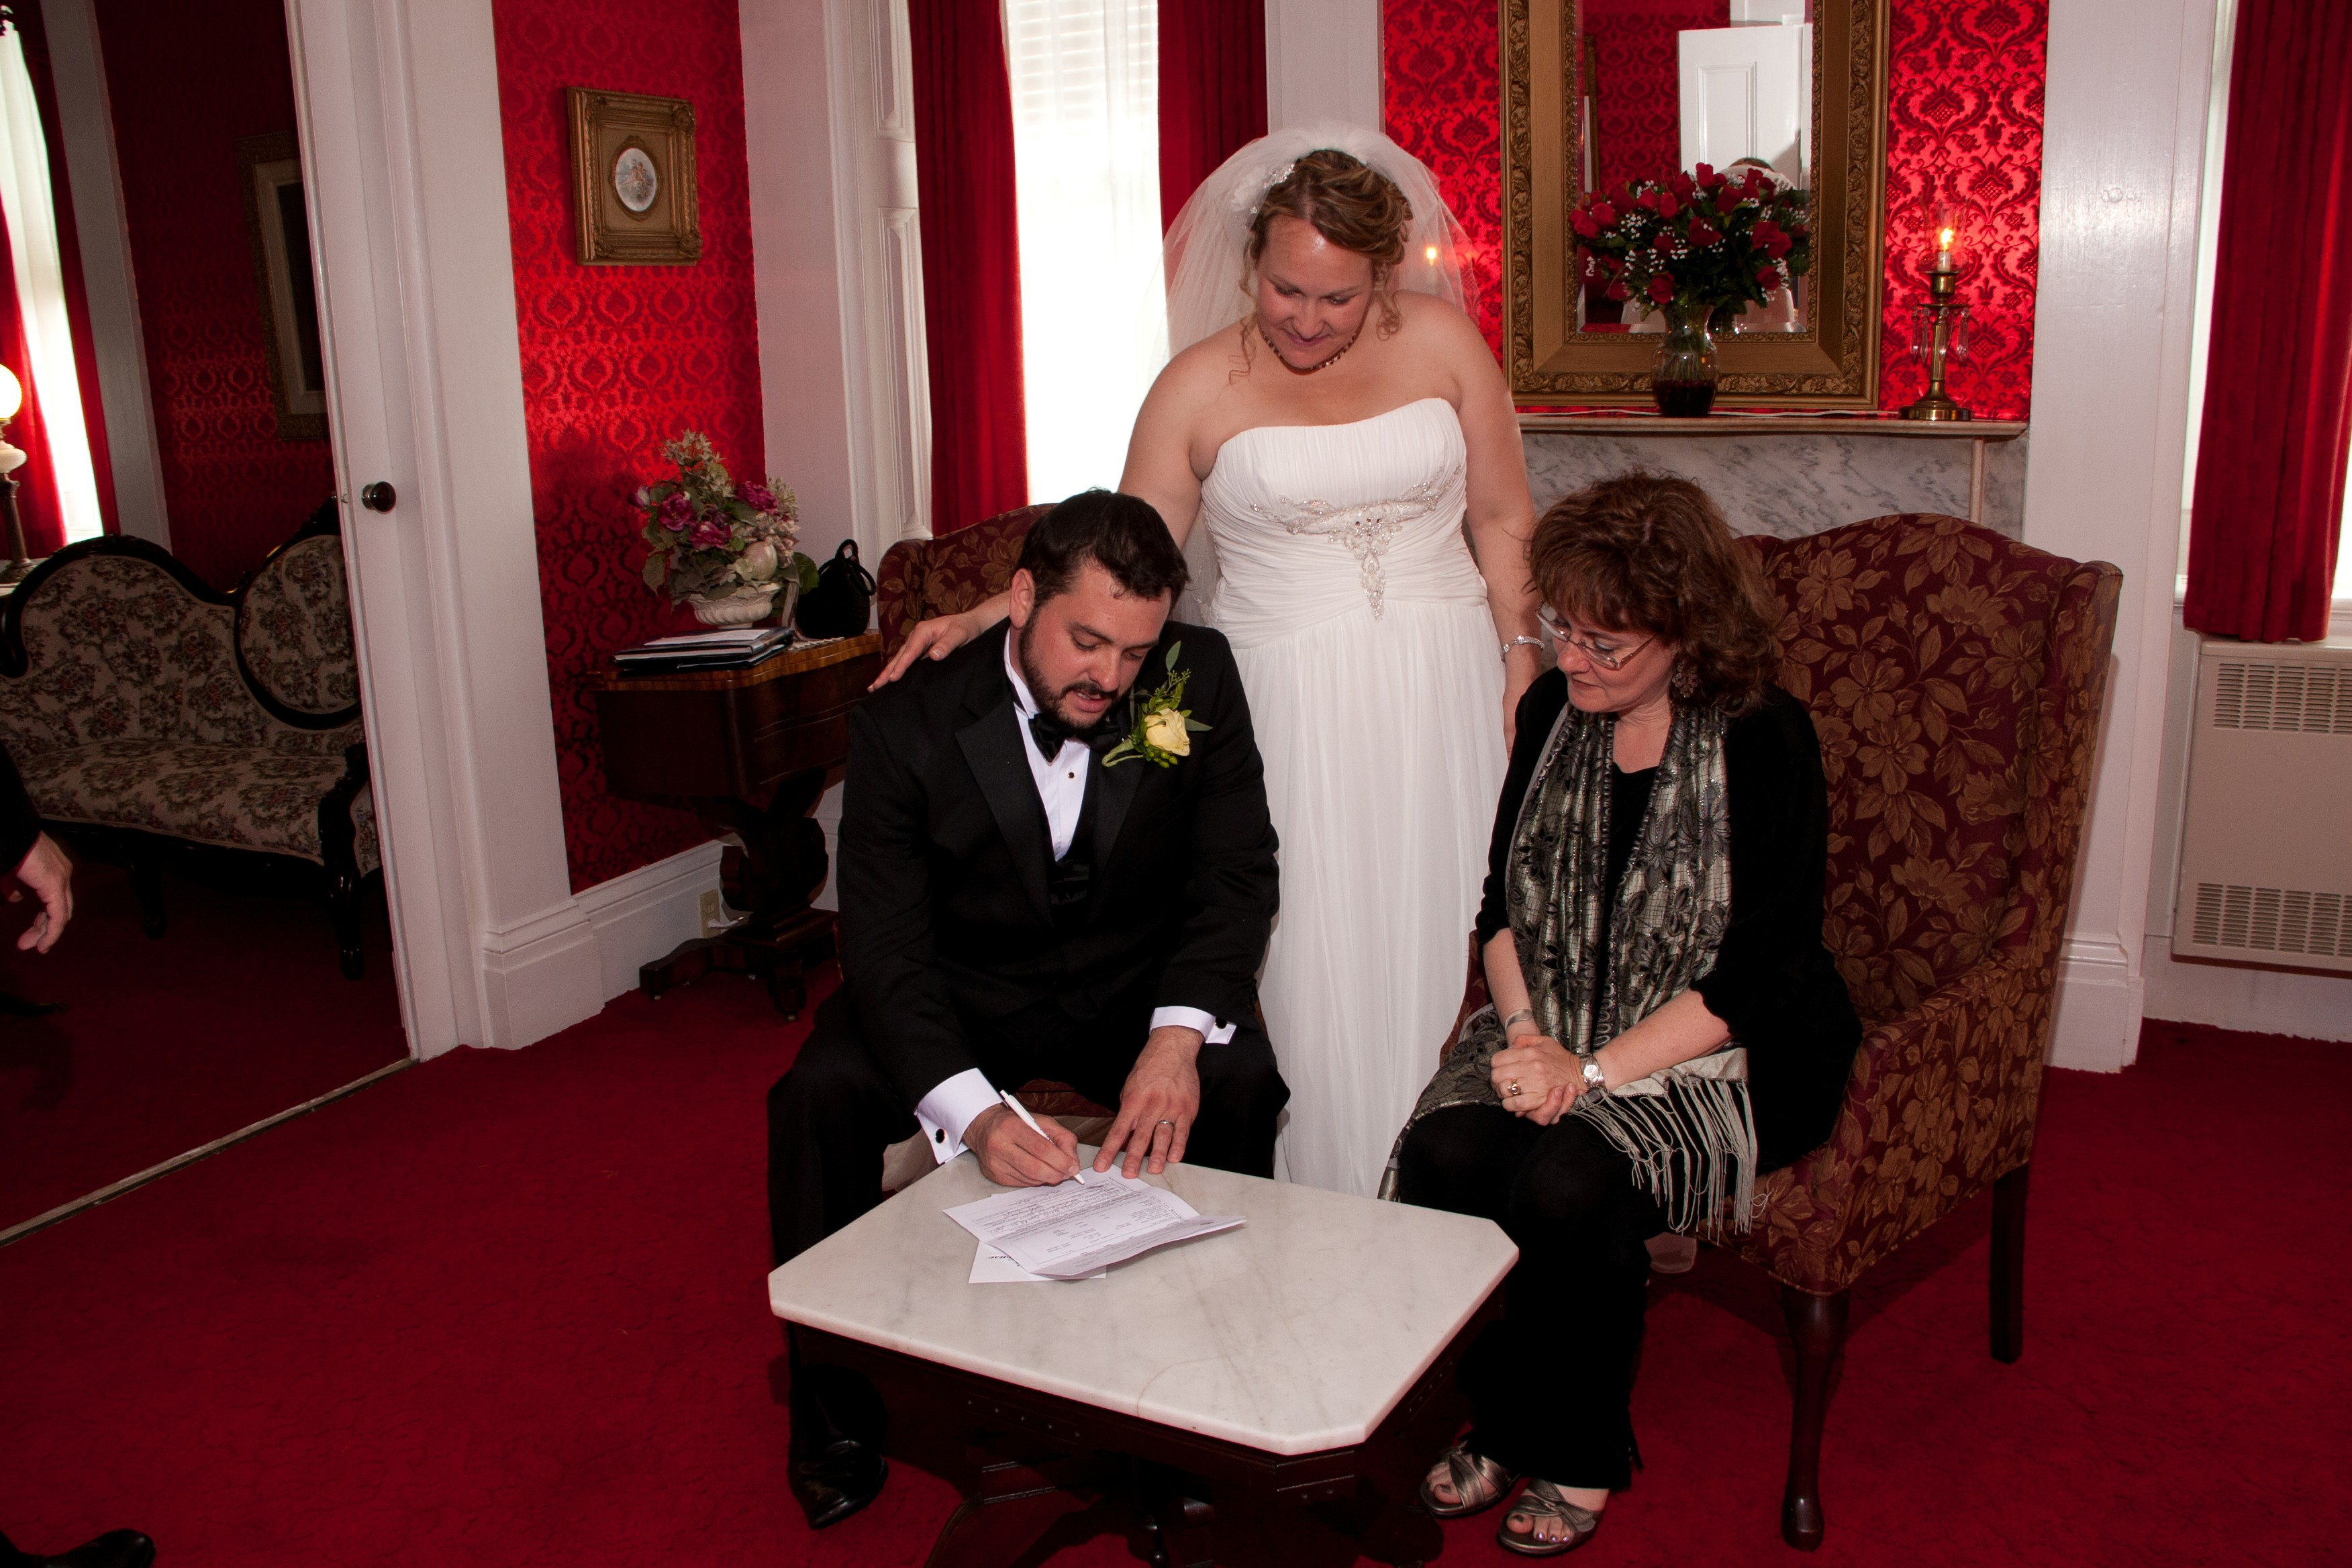 Signing the marriage license